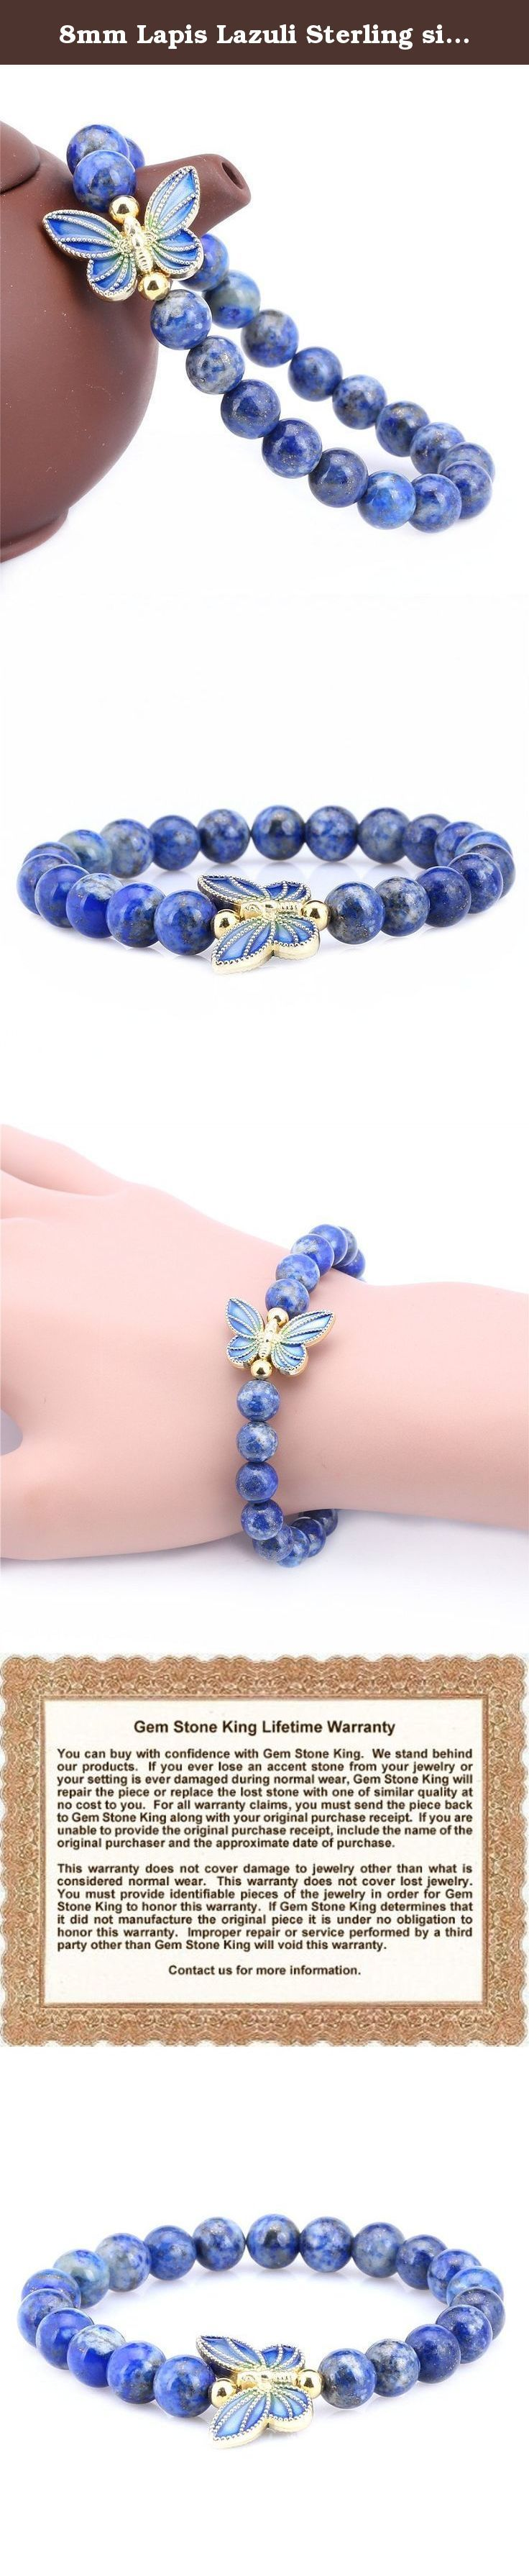 8mm Lapis Lazuli Sterling silver Cloisonne Enamel Butterfly Bracelet. This beautiful item is brand new and comes with complimentary gift packaging appropriately selected to match the item you purchased. The packaging ranges from dainty foam insert packaging to luxurious leather insert cherry wood boxes. Every order is fully insured regardless of value. This insurance protects you against damage or the loss of your item while in transit. The Shipping and Handling fees include the insurance…